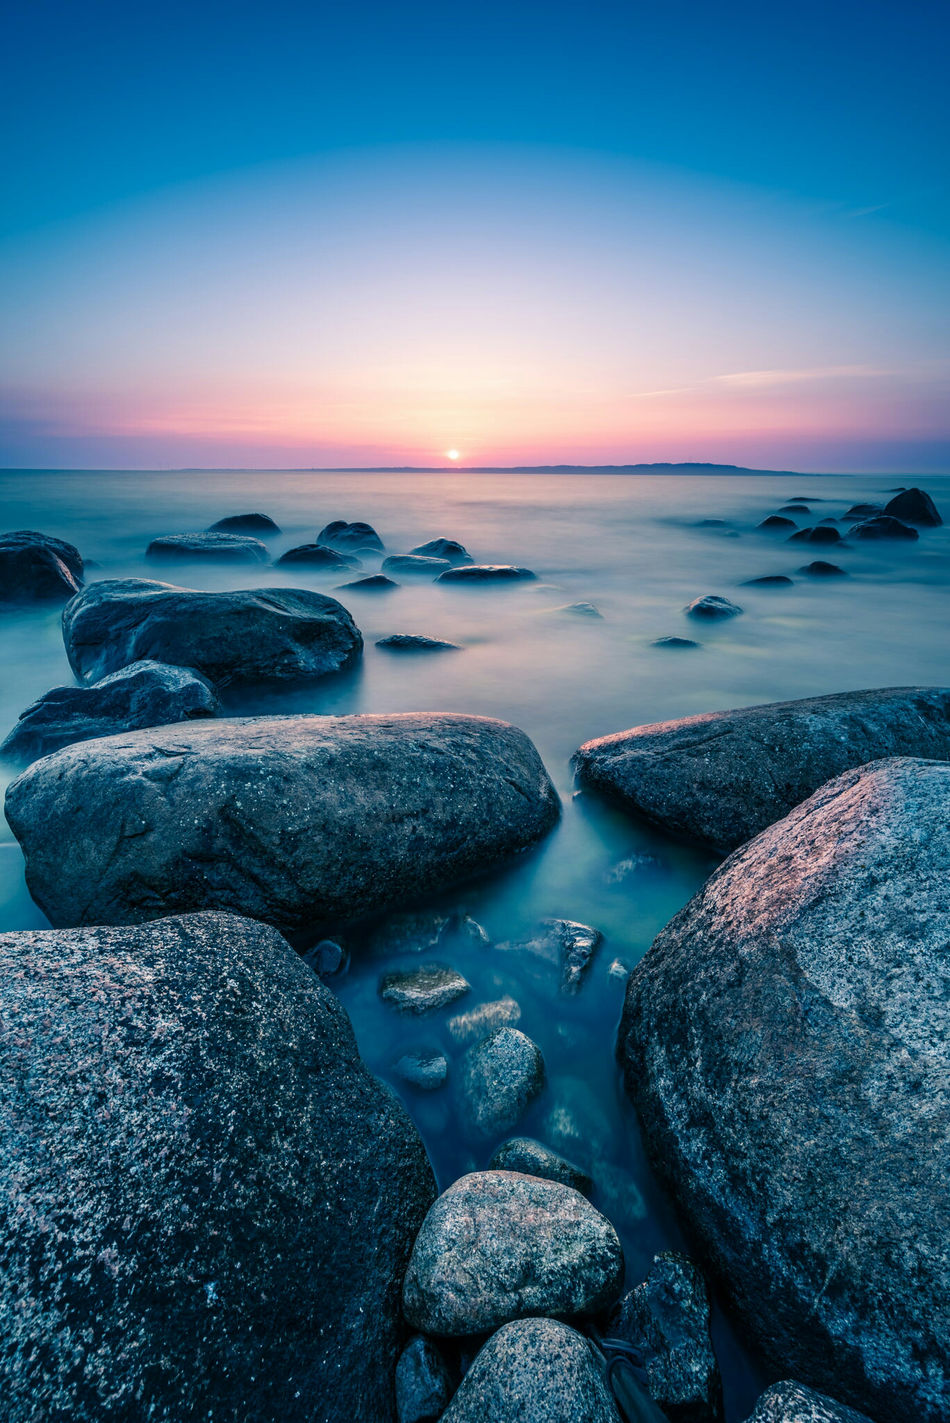 Protected pebbles. Water Sunset Tranquil Scene Scenics Sea Beauty In Nature Rock - Object Tranquility Idyllic Nature Blue Shore Non-urban Scene Sky Rock Formation Calm Outdoors Ocean No People Sweden Sweden Nature Hano